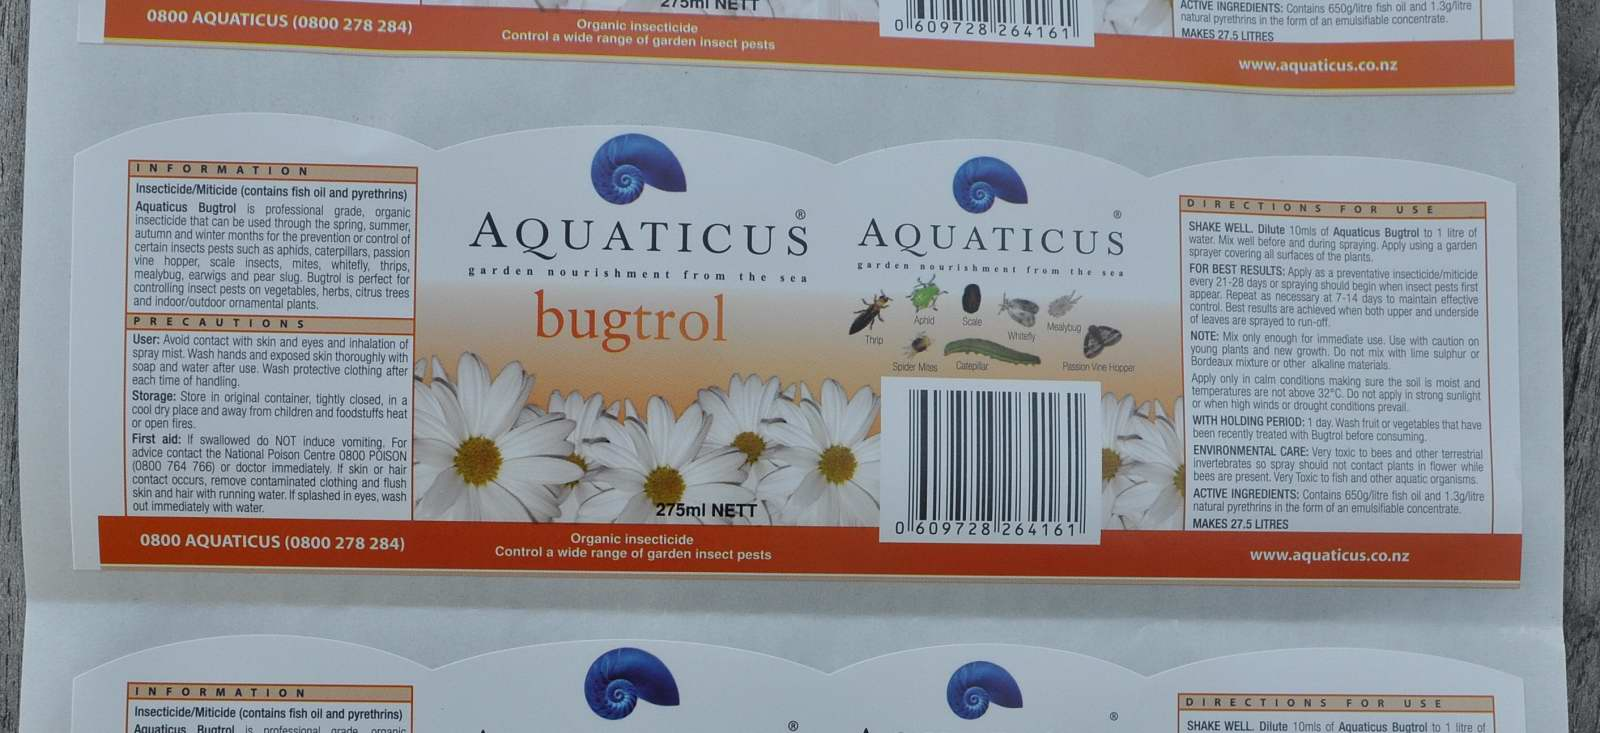 Aquaticus Bugtrol Label30001